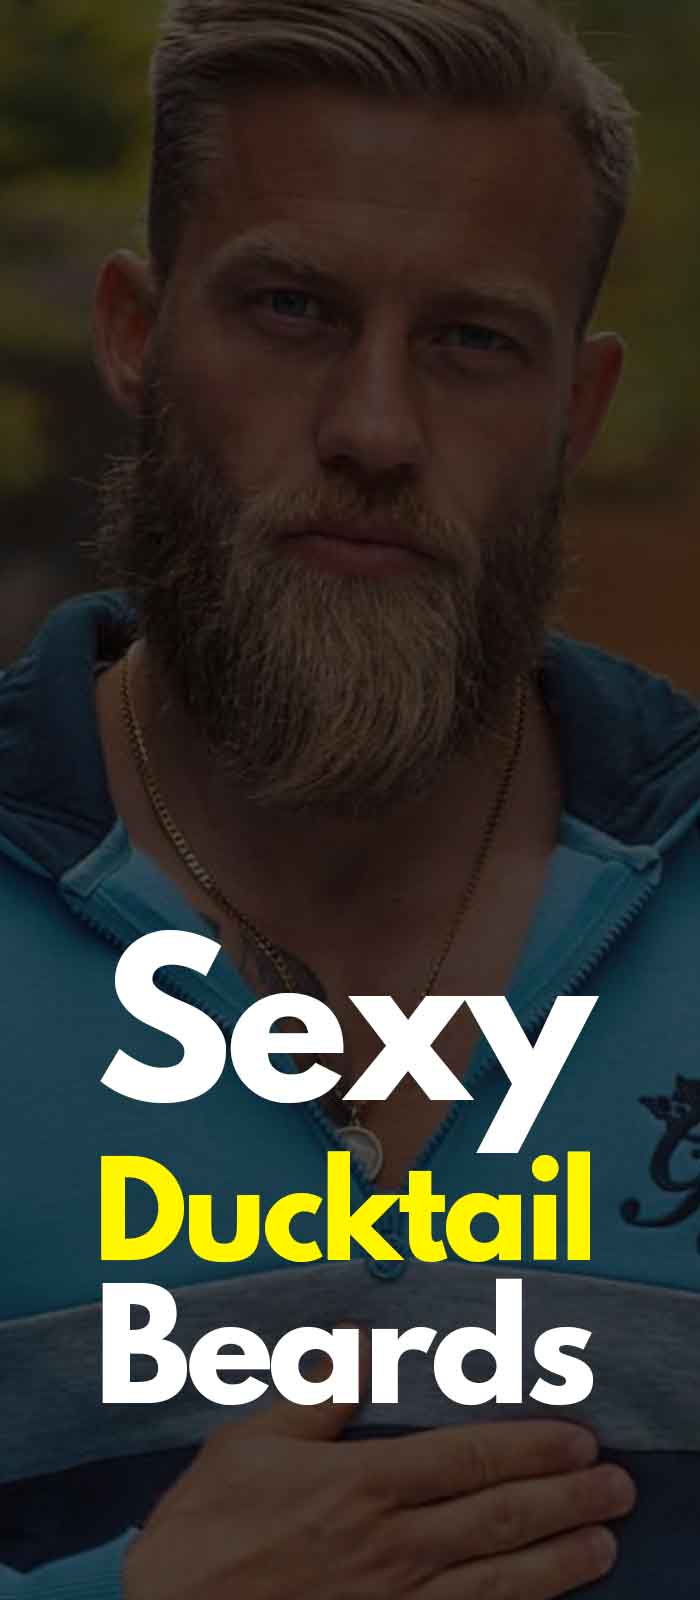 Blue Zipper Matured yet Sexy Ducktail Beard!